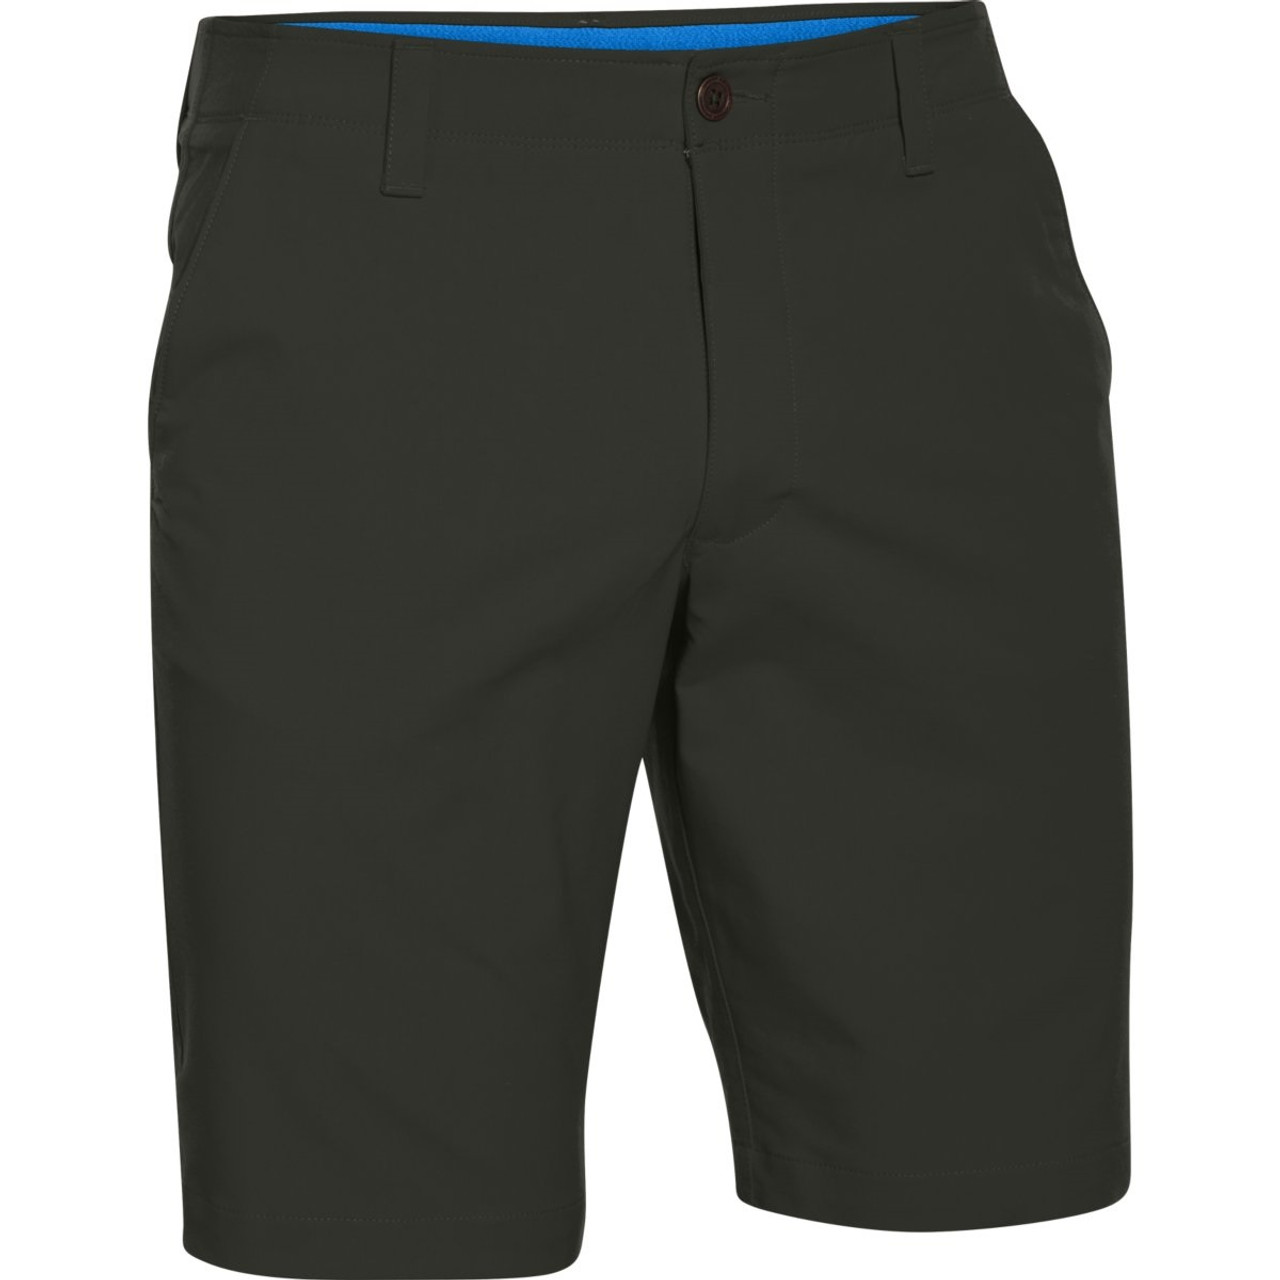 Play Under Shorts Artillery Armour Green Match xeWBrEdCoQ